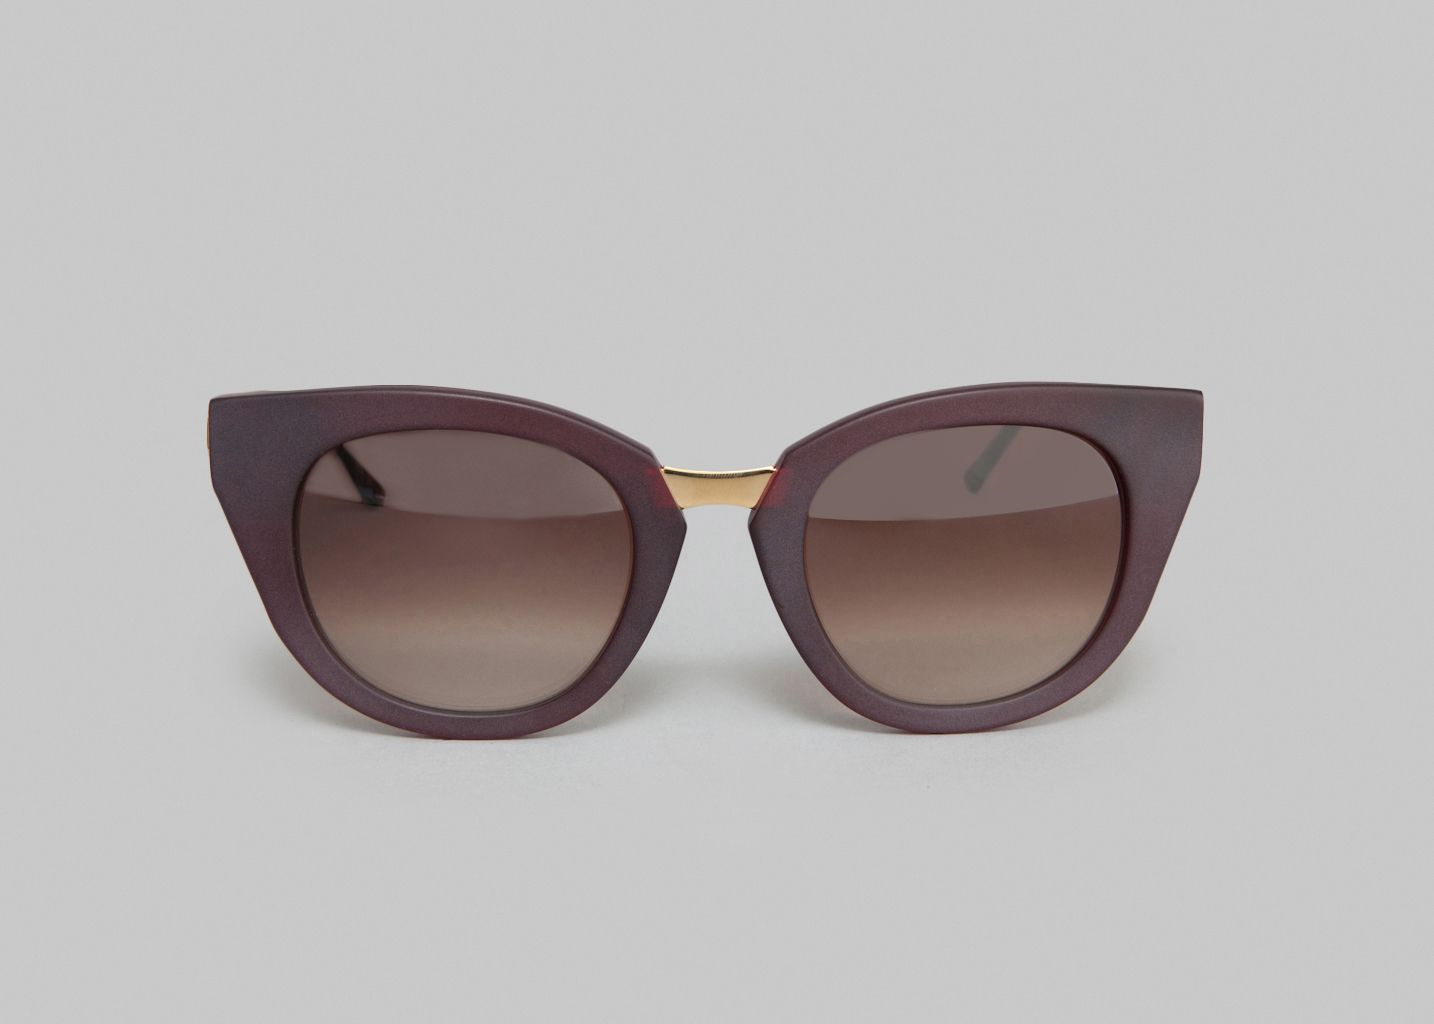 Lunettes Snobby - Thierry Lasry